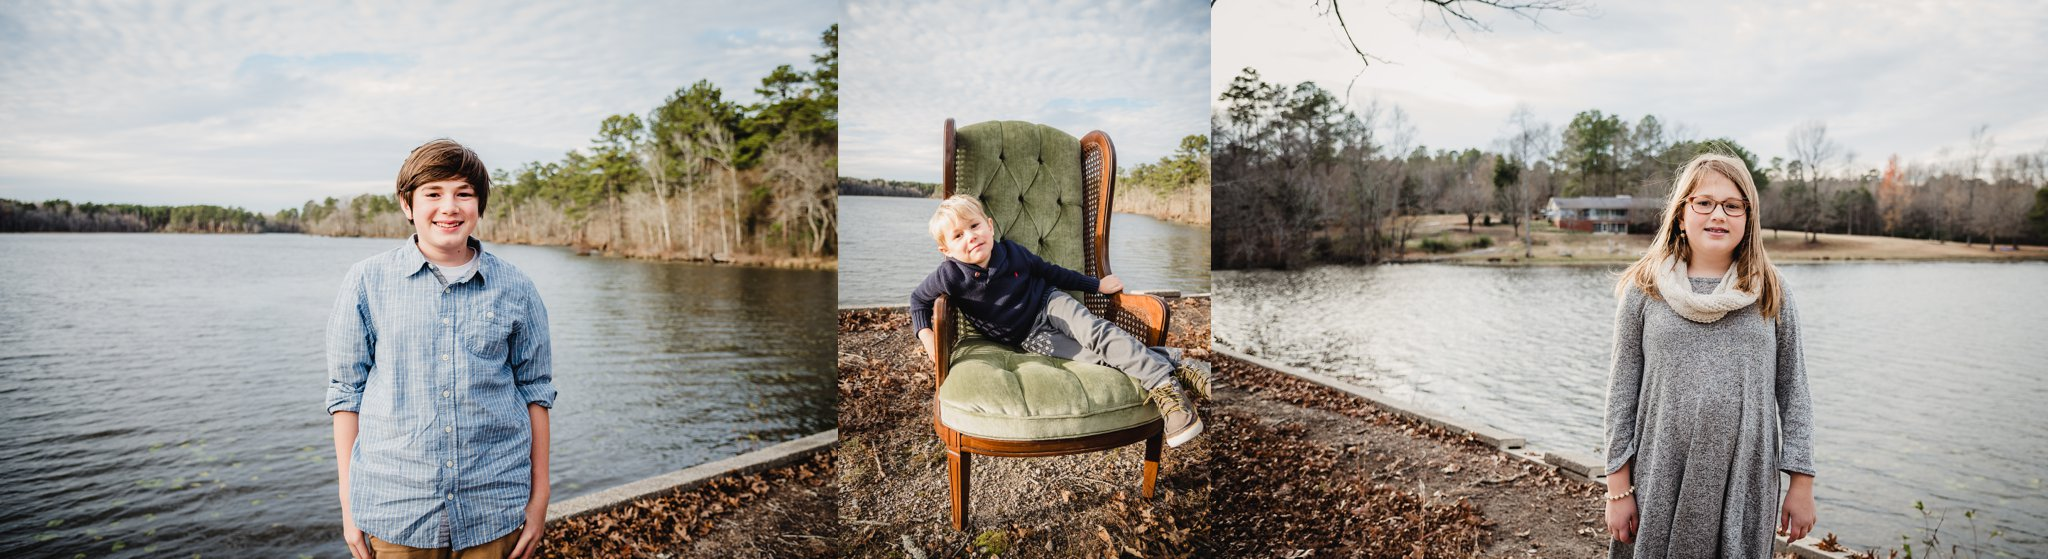 These kiddos got their family pictures taken in front of Lake Myra in Wendell, NC with Rose Trail Images.